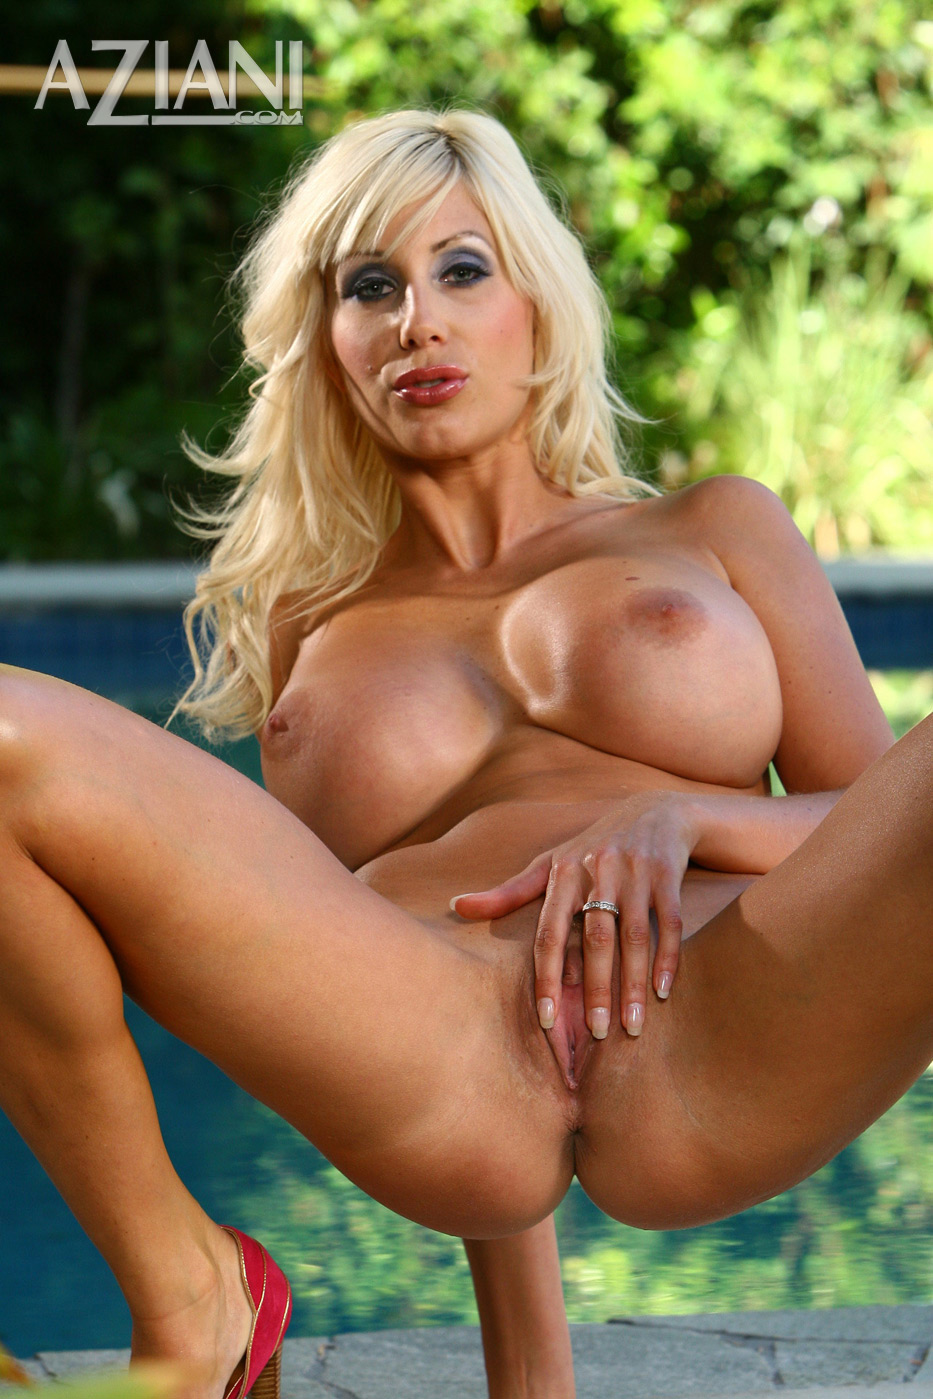 Aziani.com presents nude photos of Puma Swede